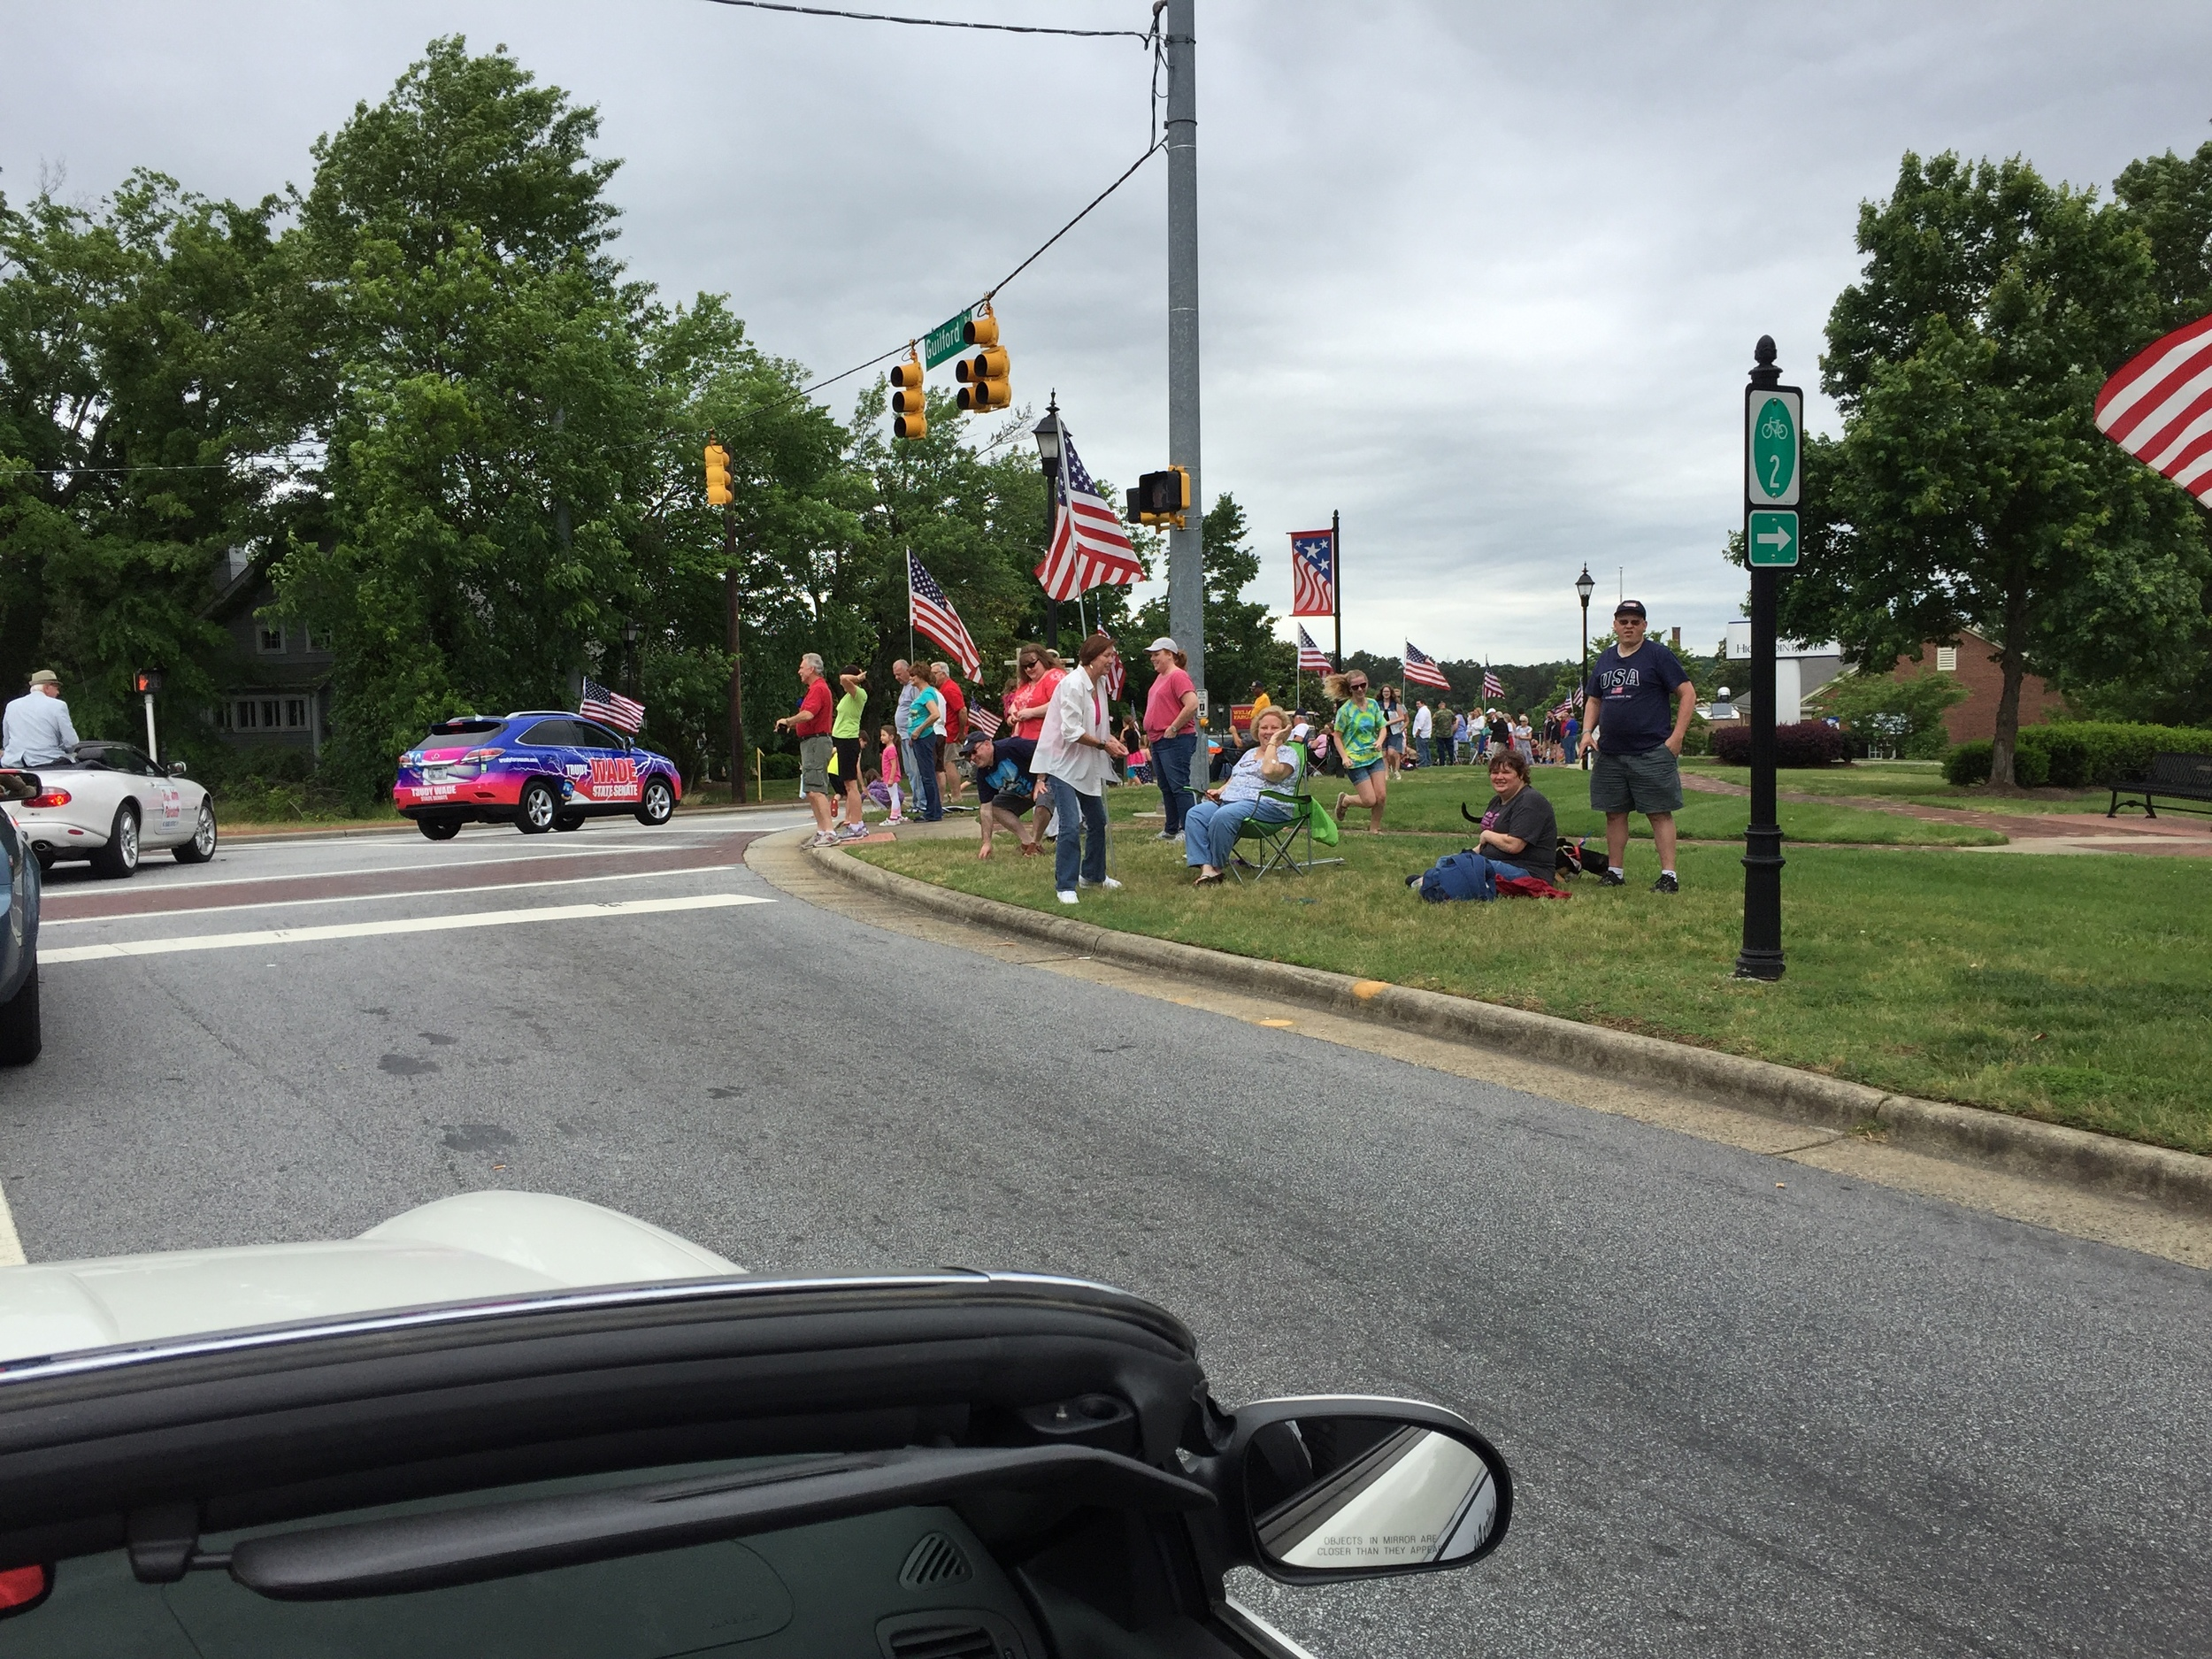 At Jamestown Memorial Day parade, May 29, 2016.